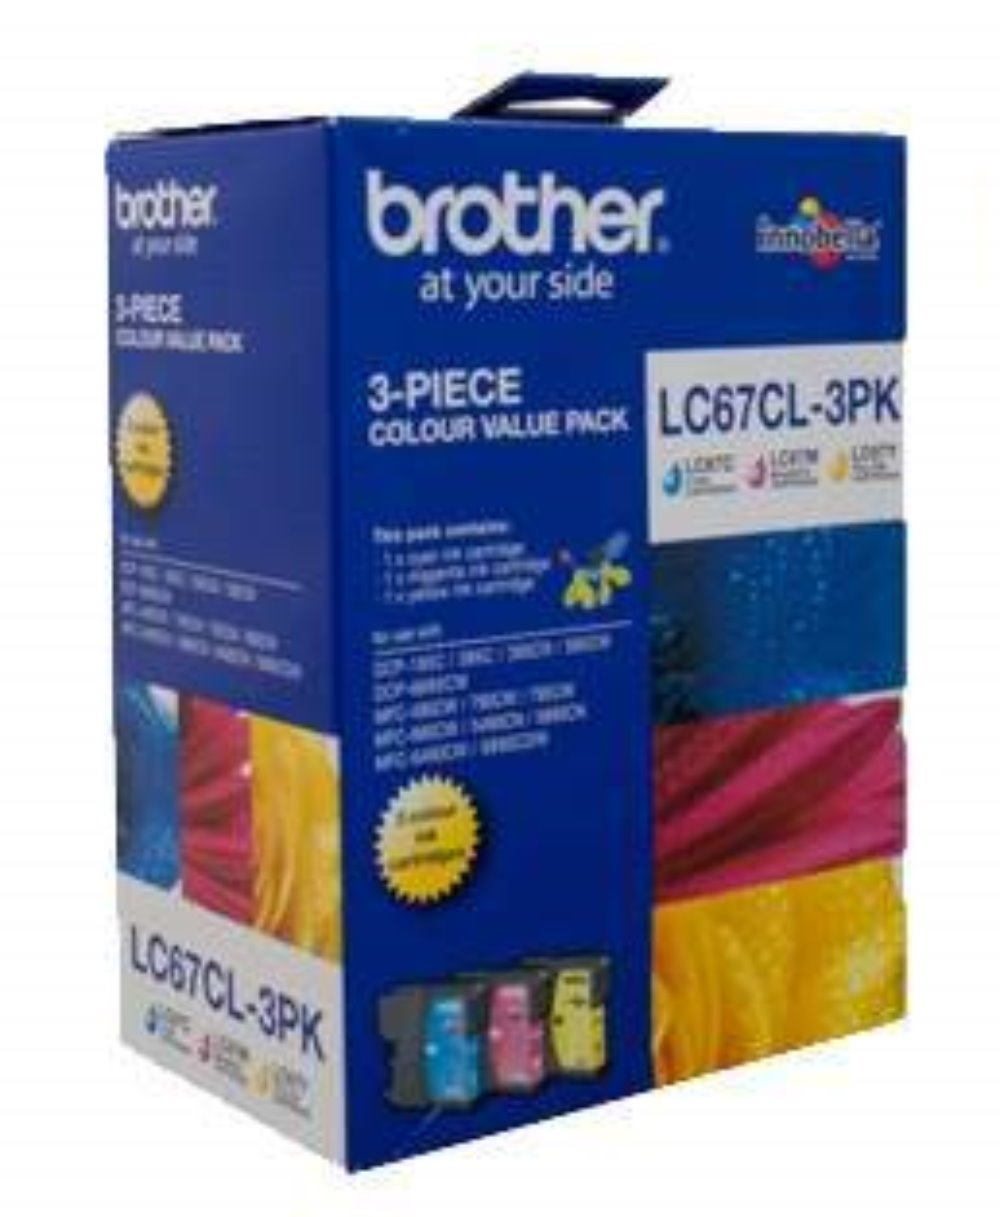 LC67CL-3PK Brother genuine high yield value pack